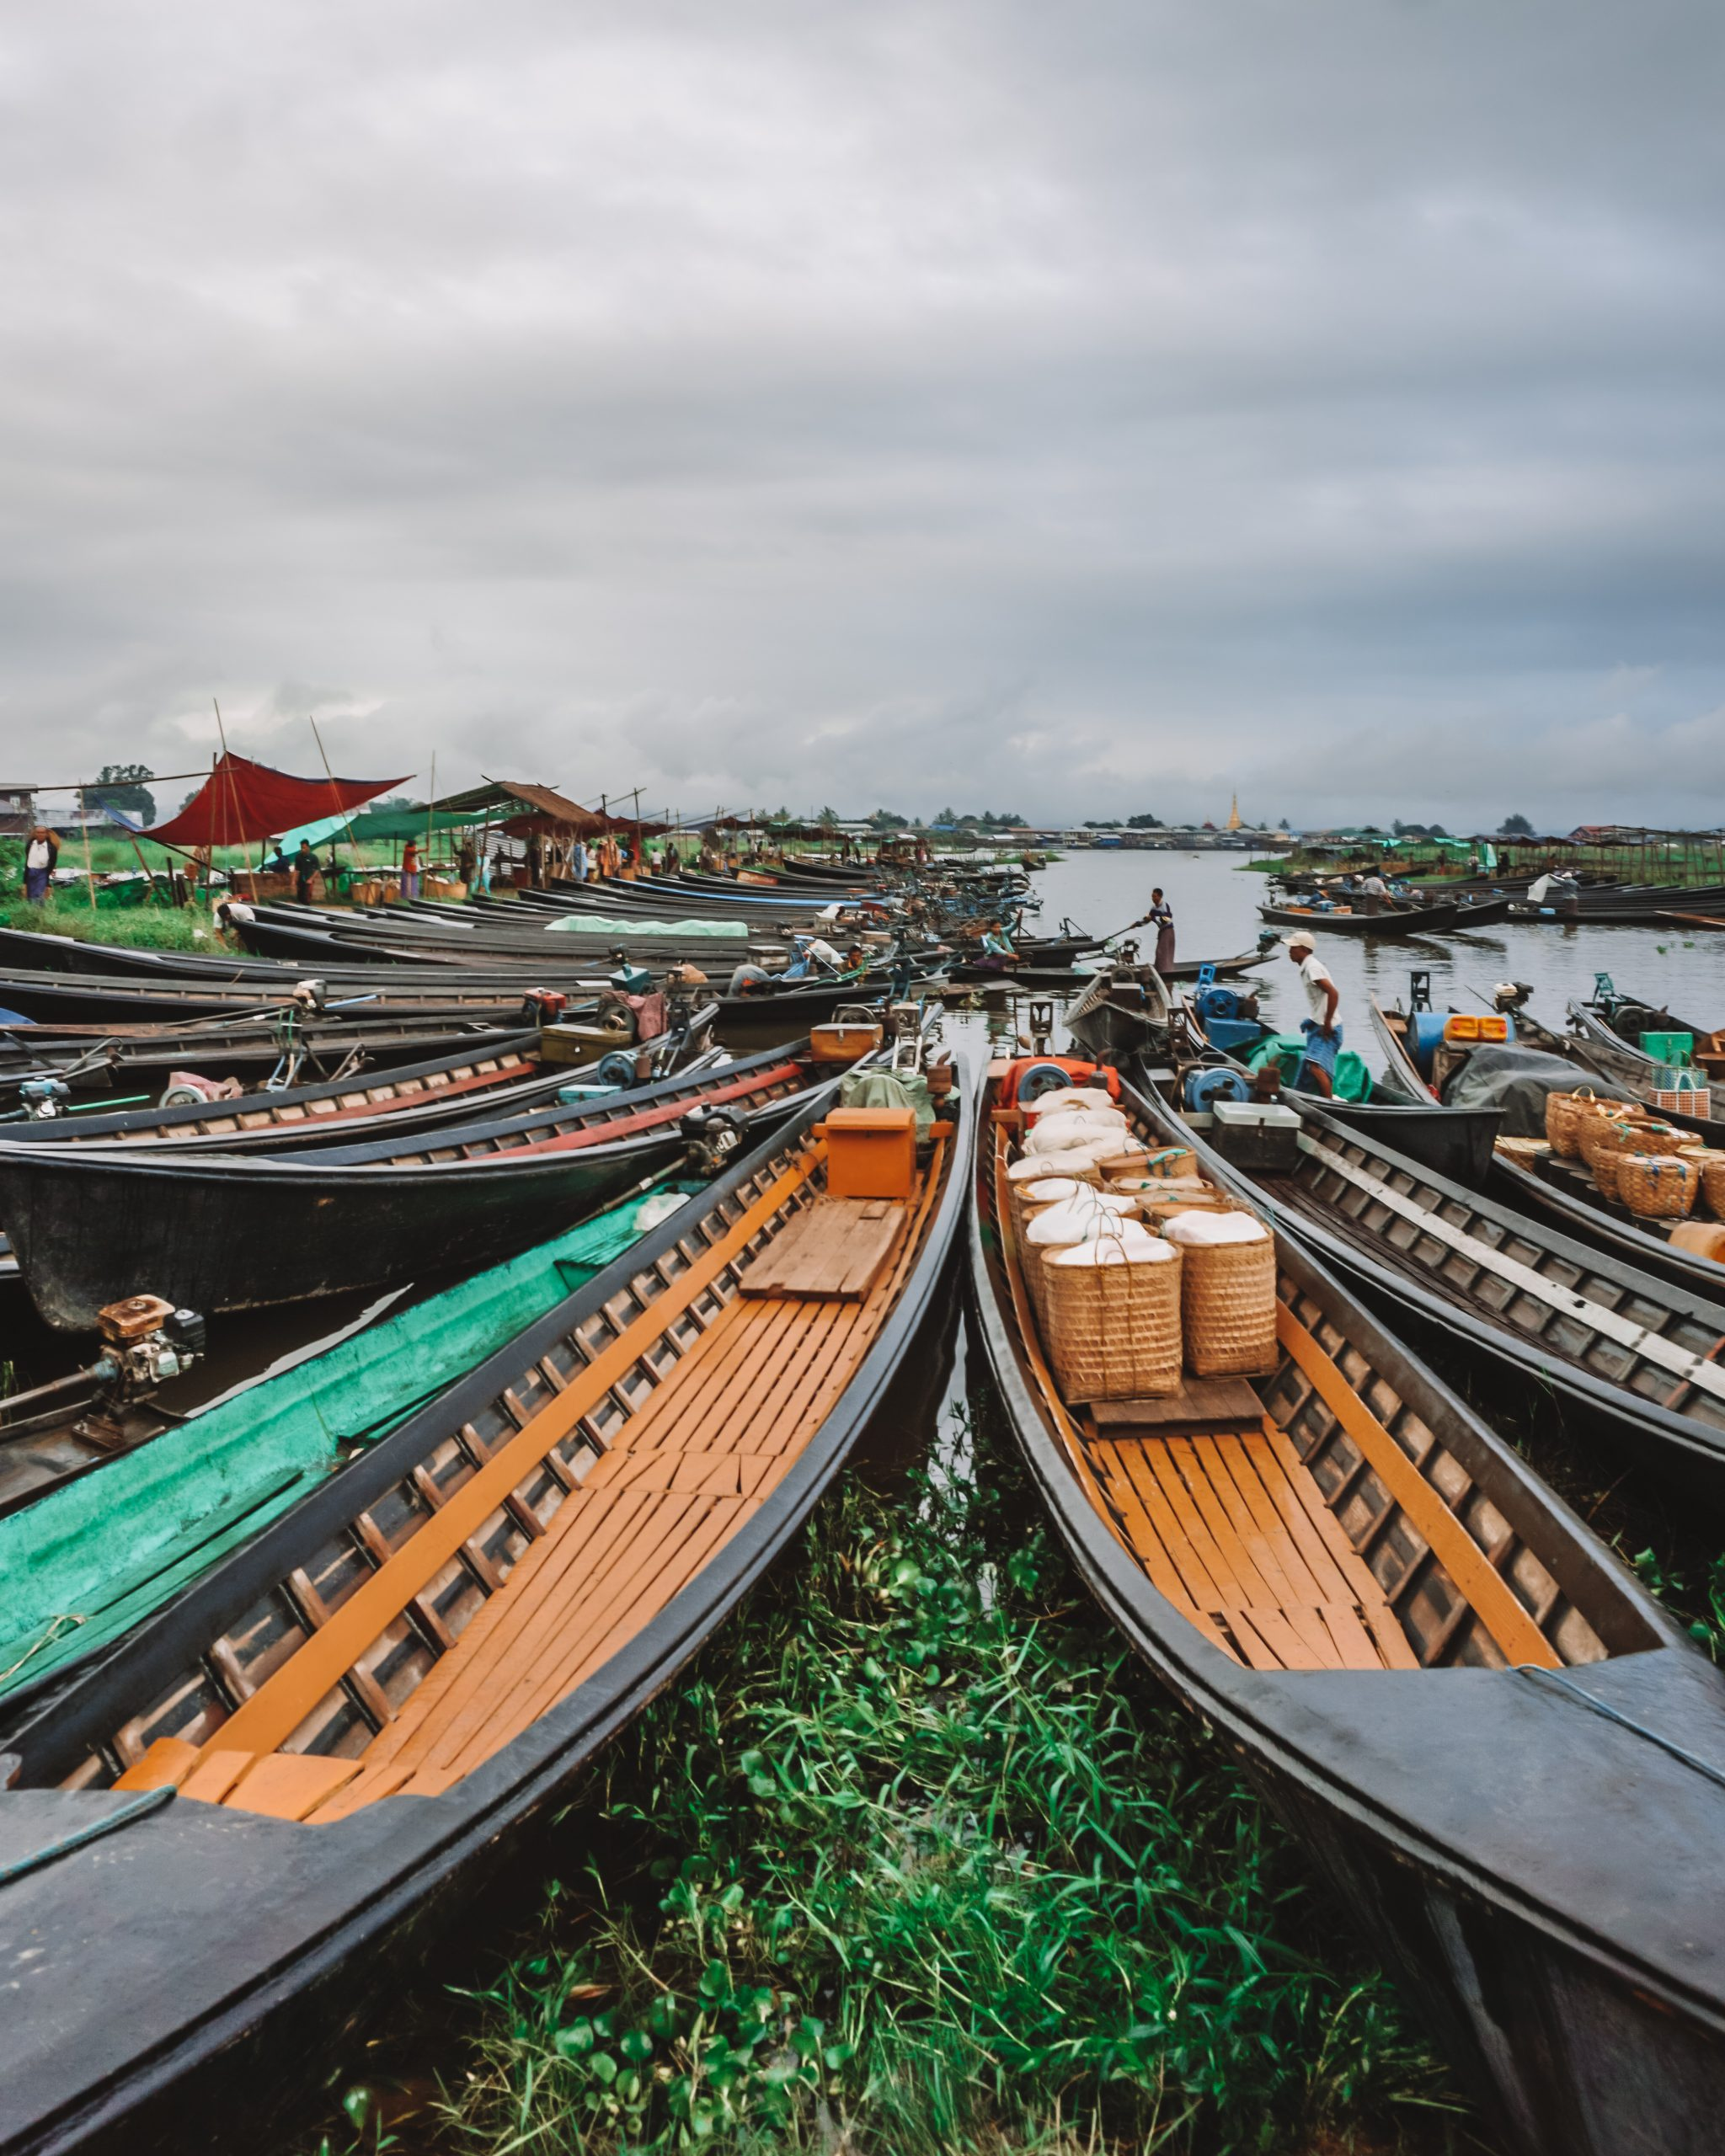 boats parked at the five day market in inle lake myanmar